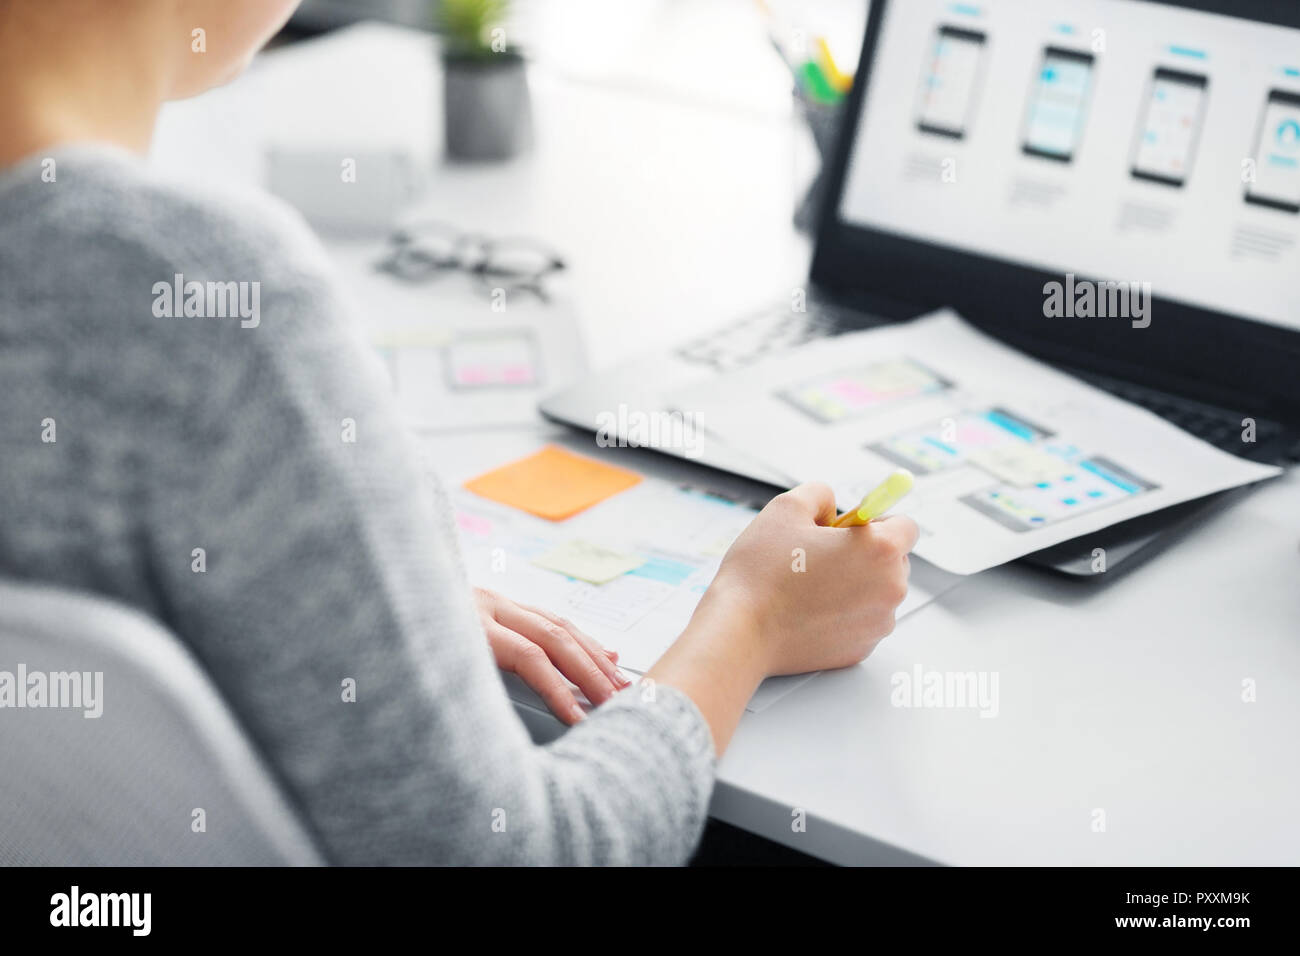 web designer working on user interface at office - Stock Image